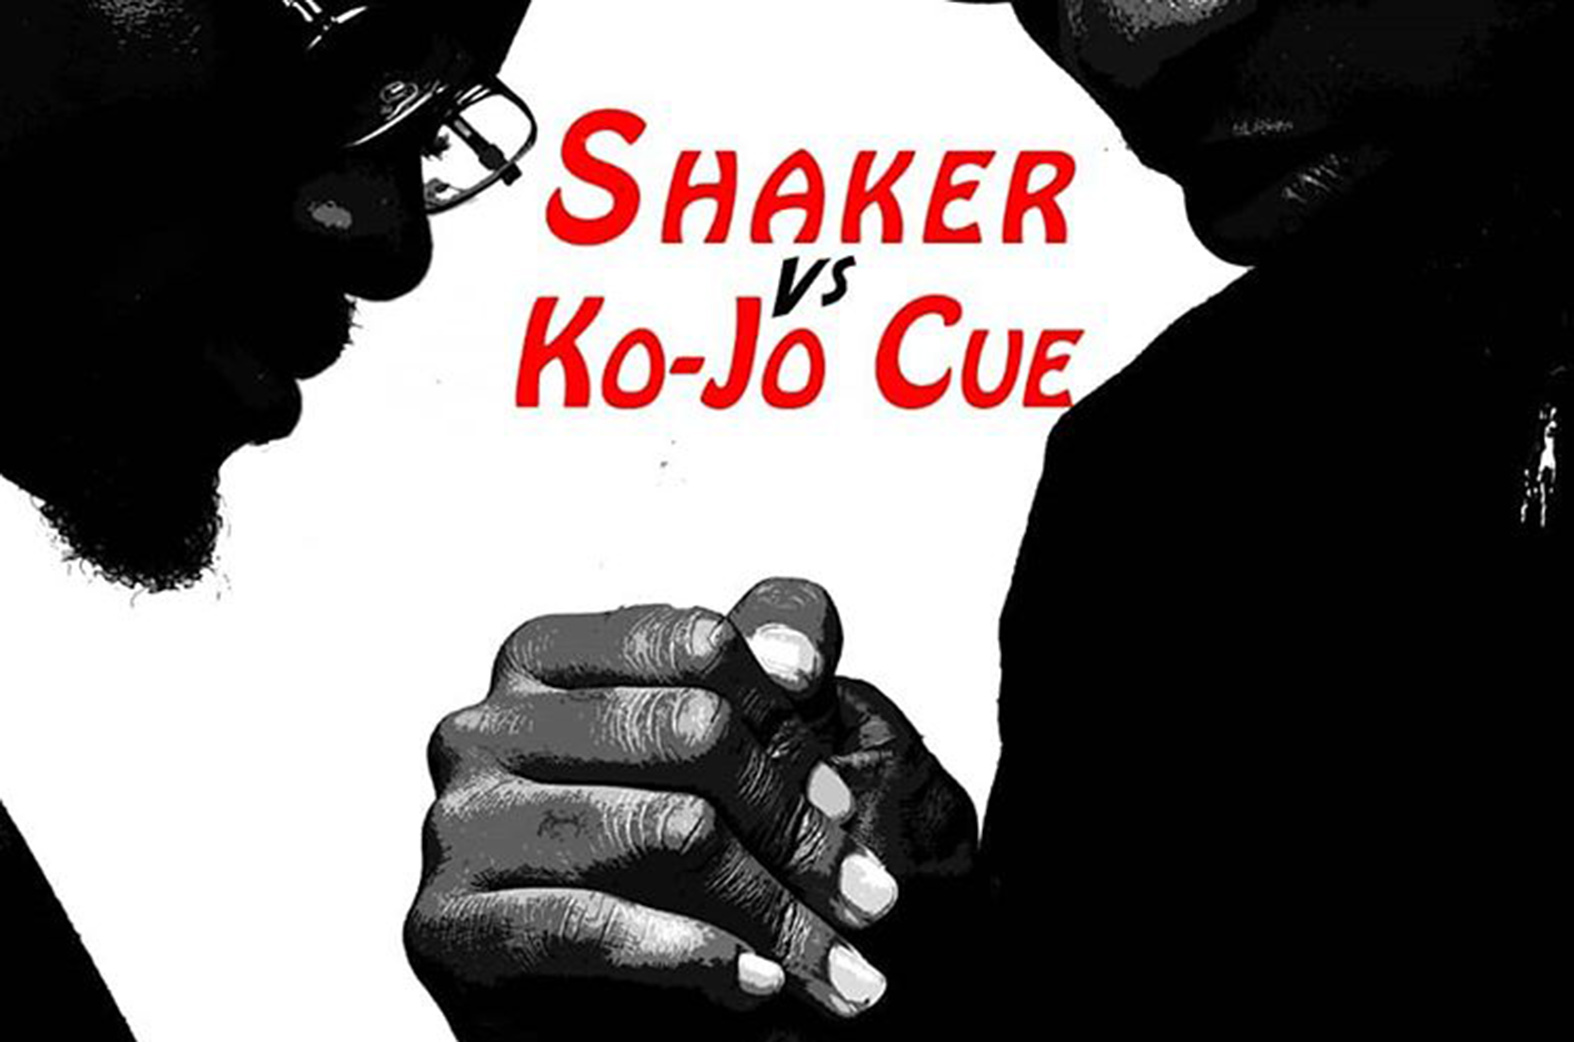 Shaker & Ko-Jo Cue joint concert on 26th October